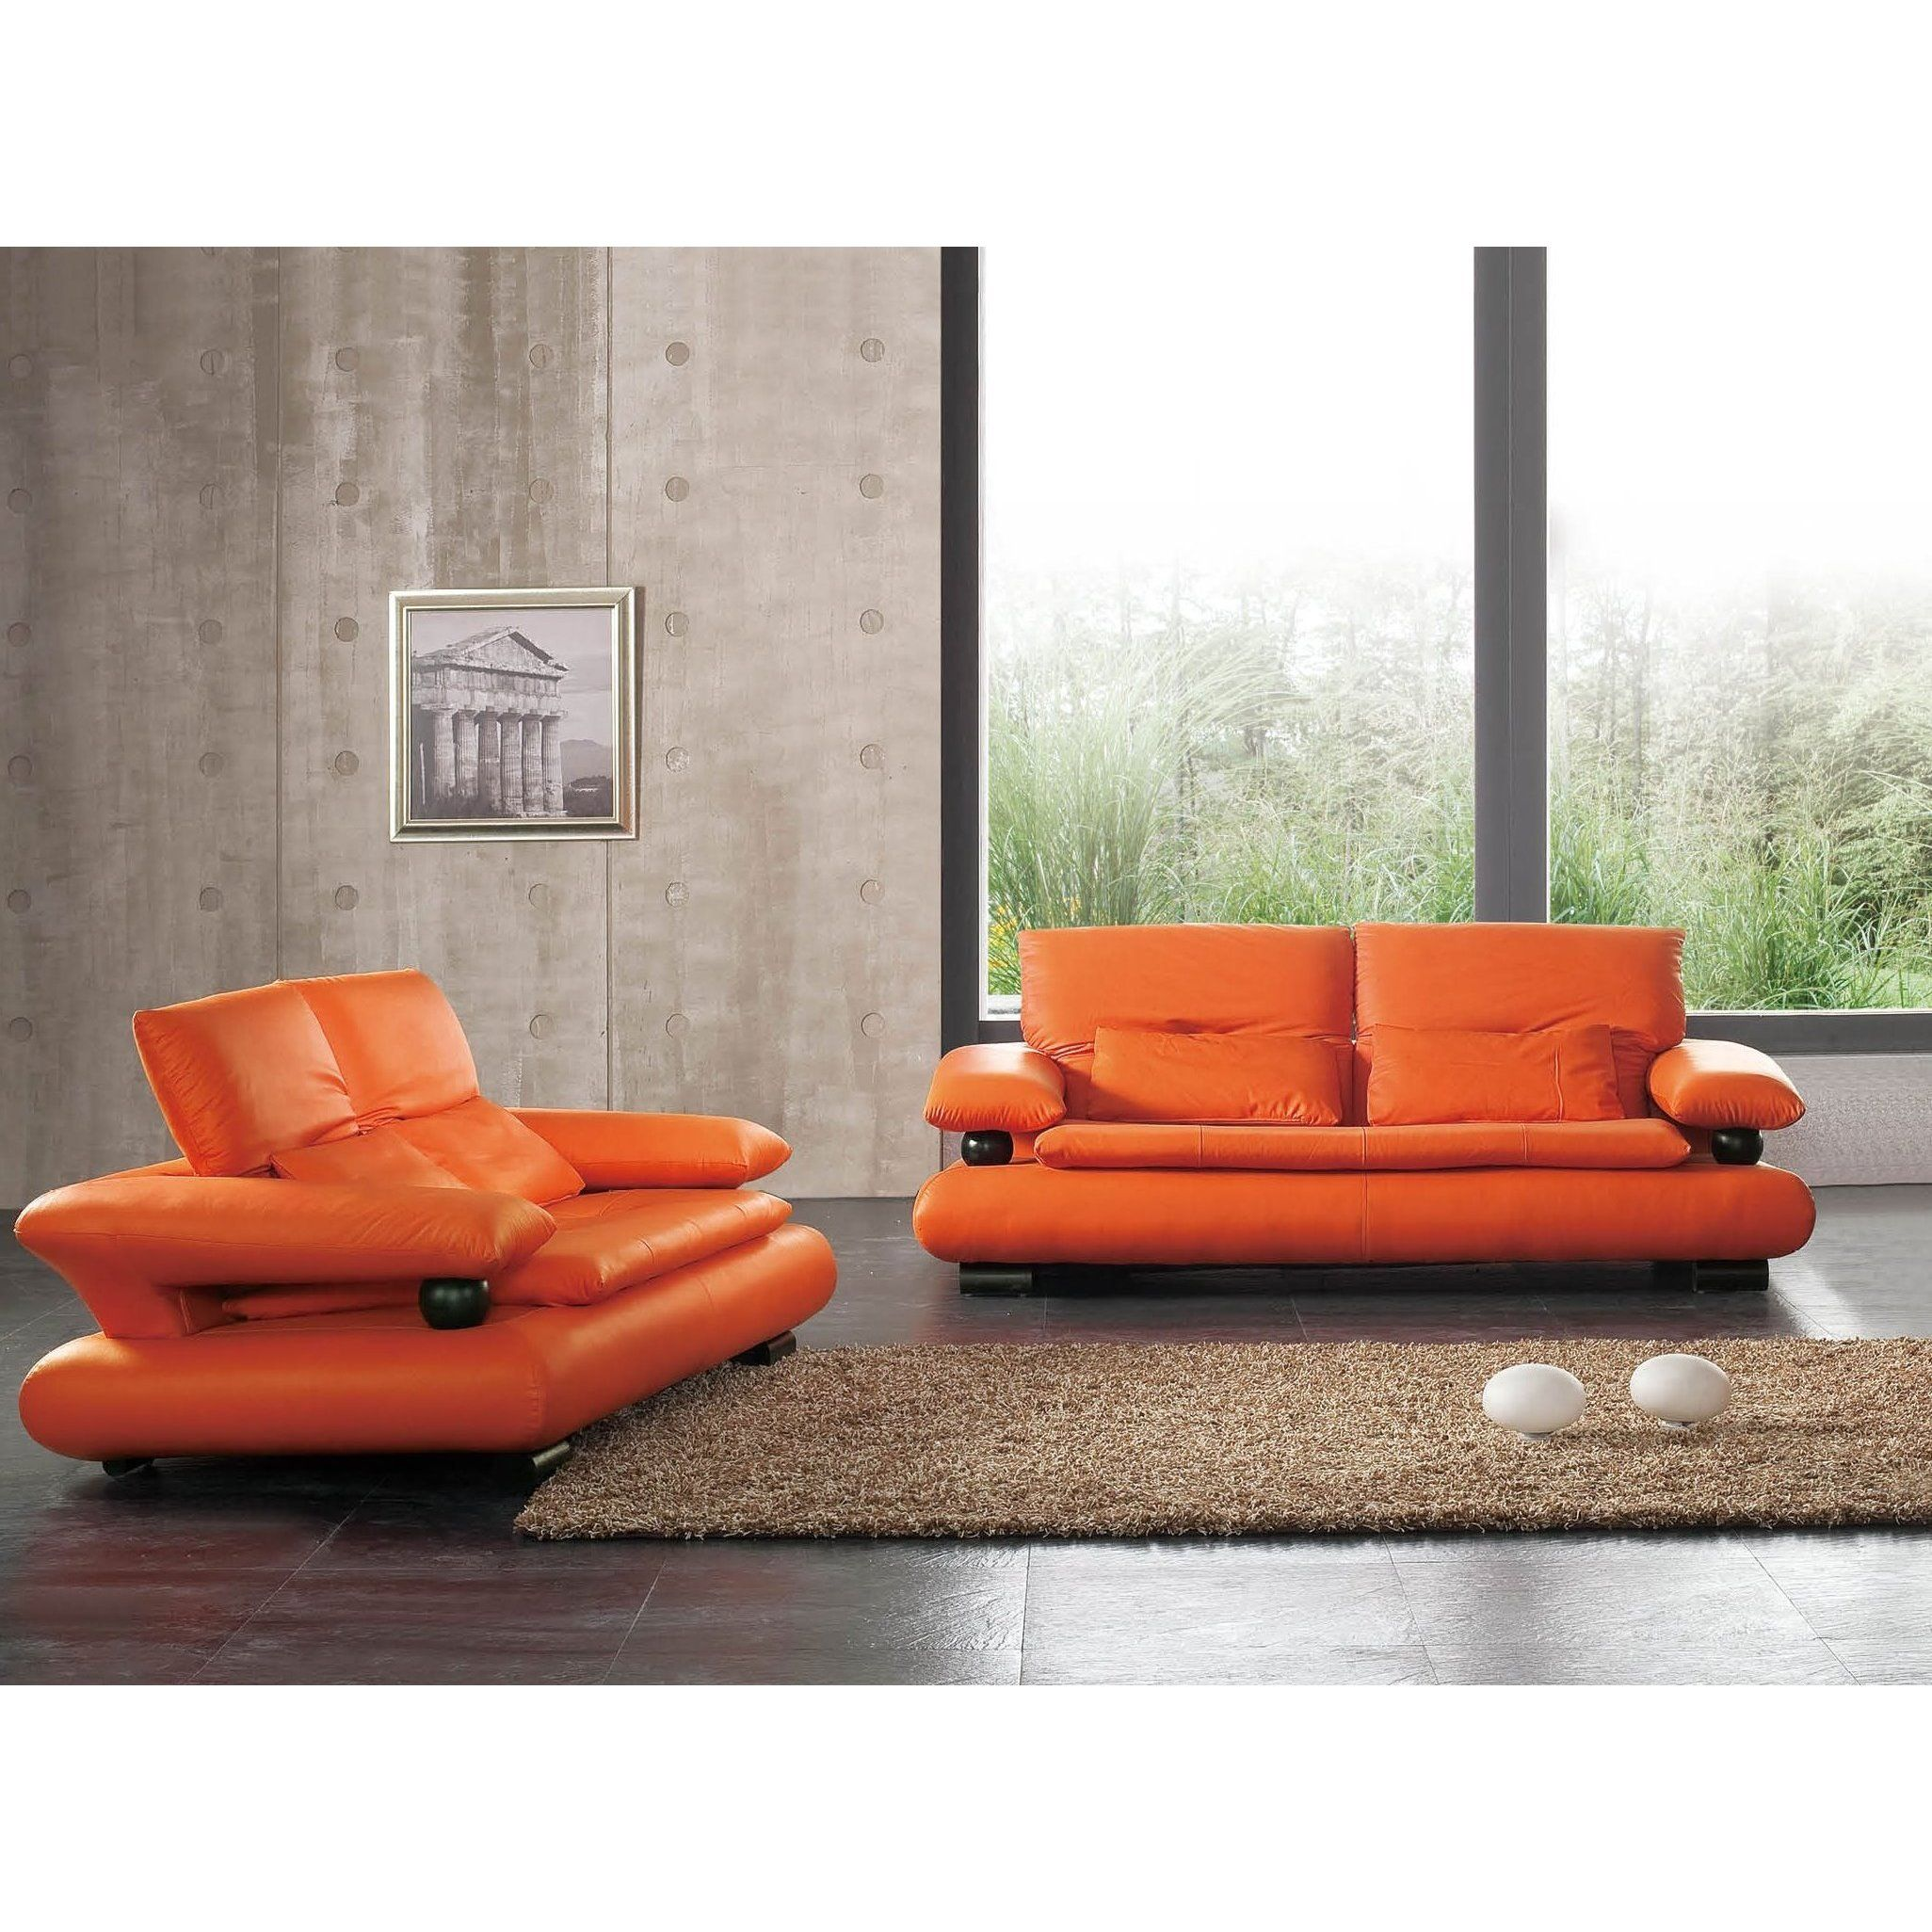 Miraculous Luca Home Sofa And Loveseat Combo S Small Dailytribune Chair Design For Home Dailytribuneorg